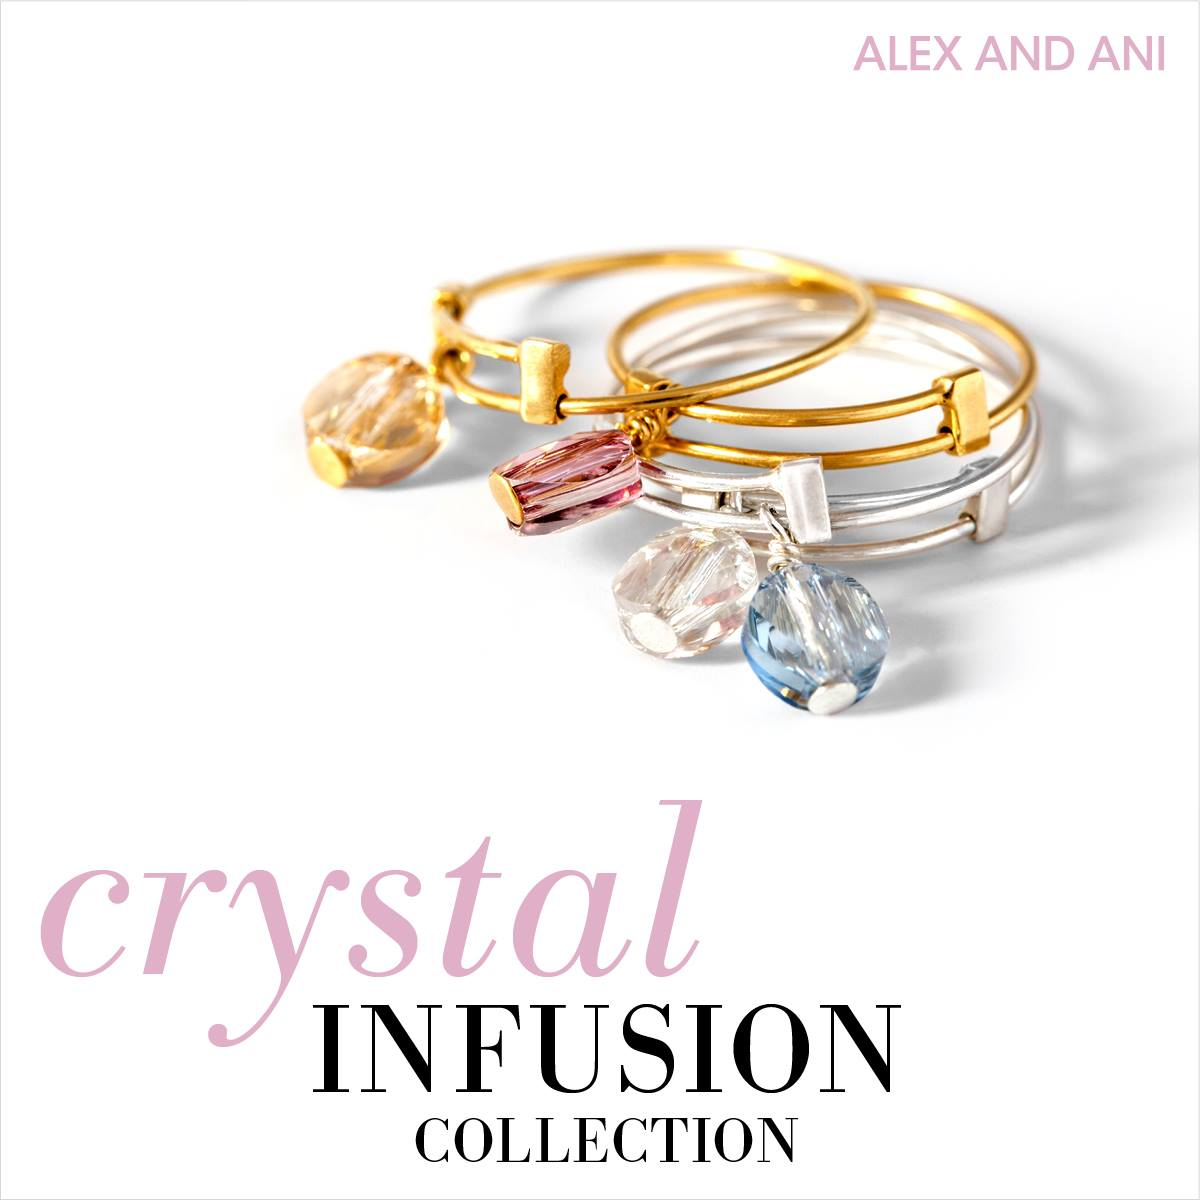 Alex and Ani Crystal Infusion Collection